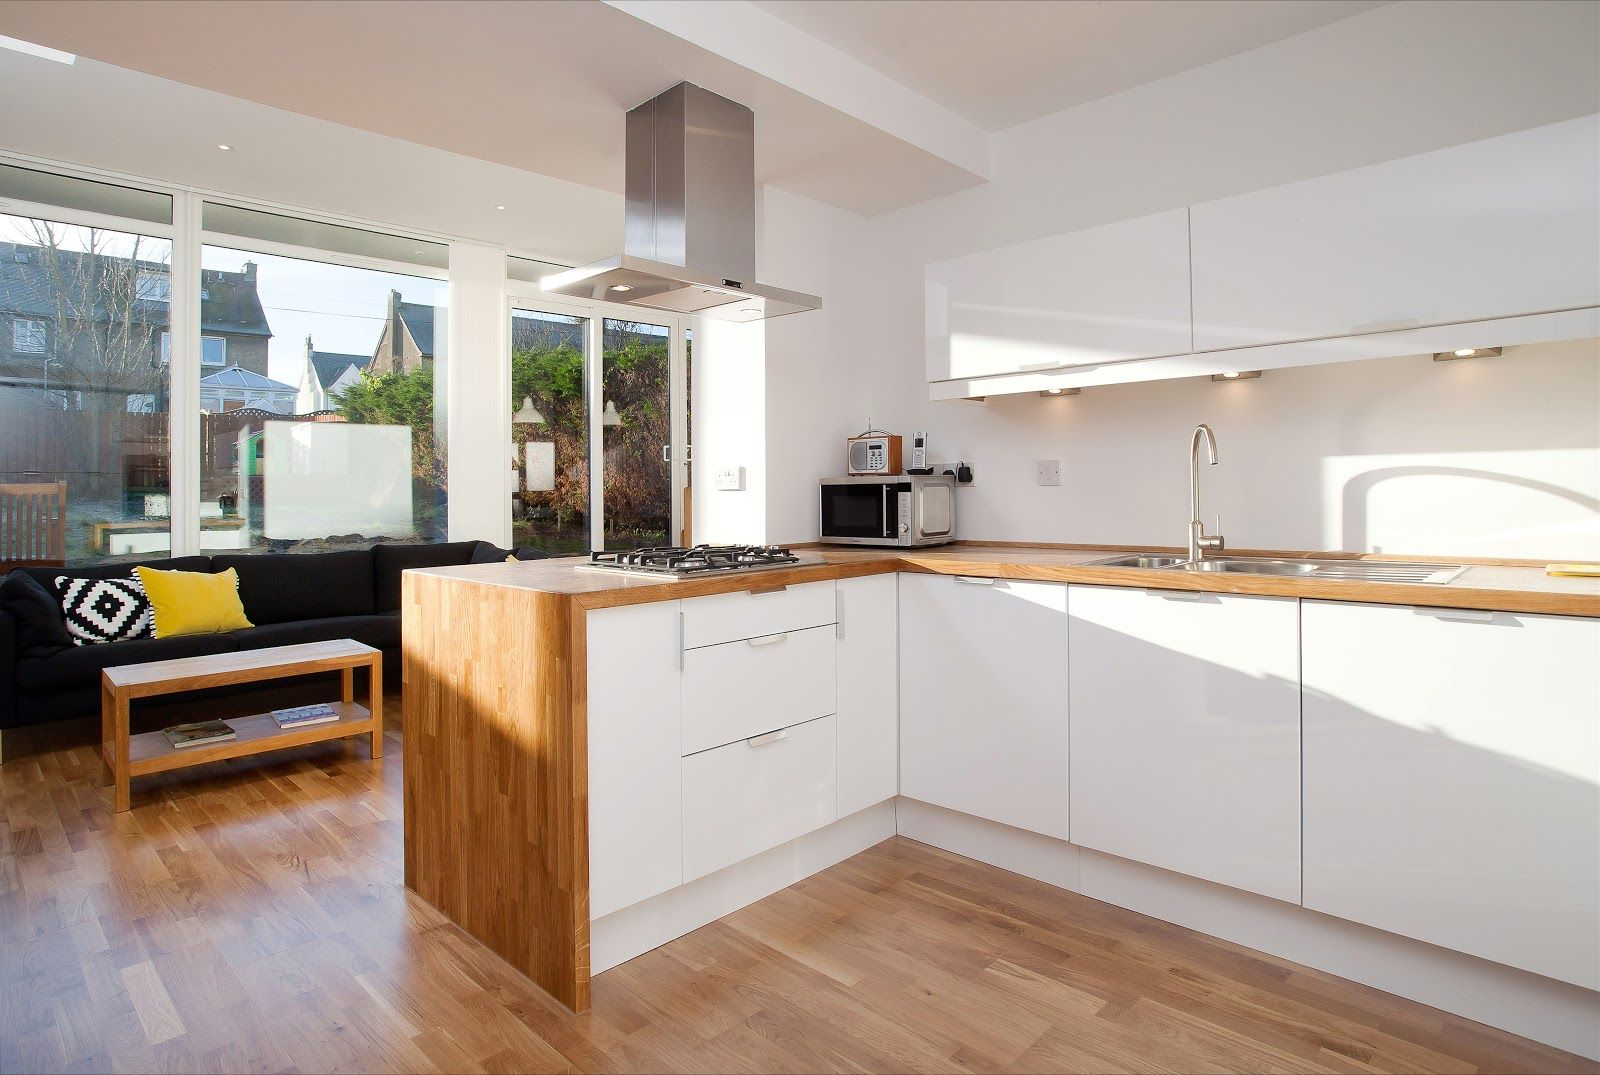 Single storey extension ideas google search kitchen for Furniture queensferry